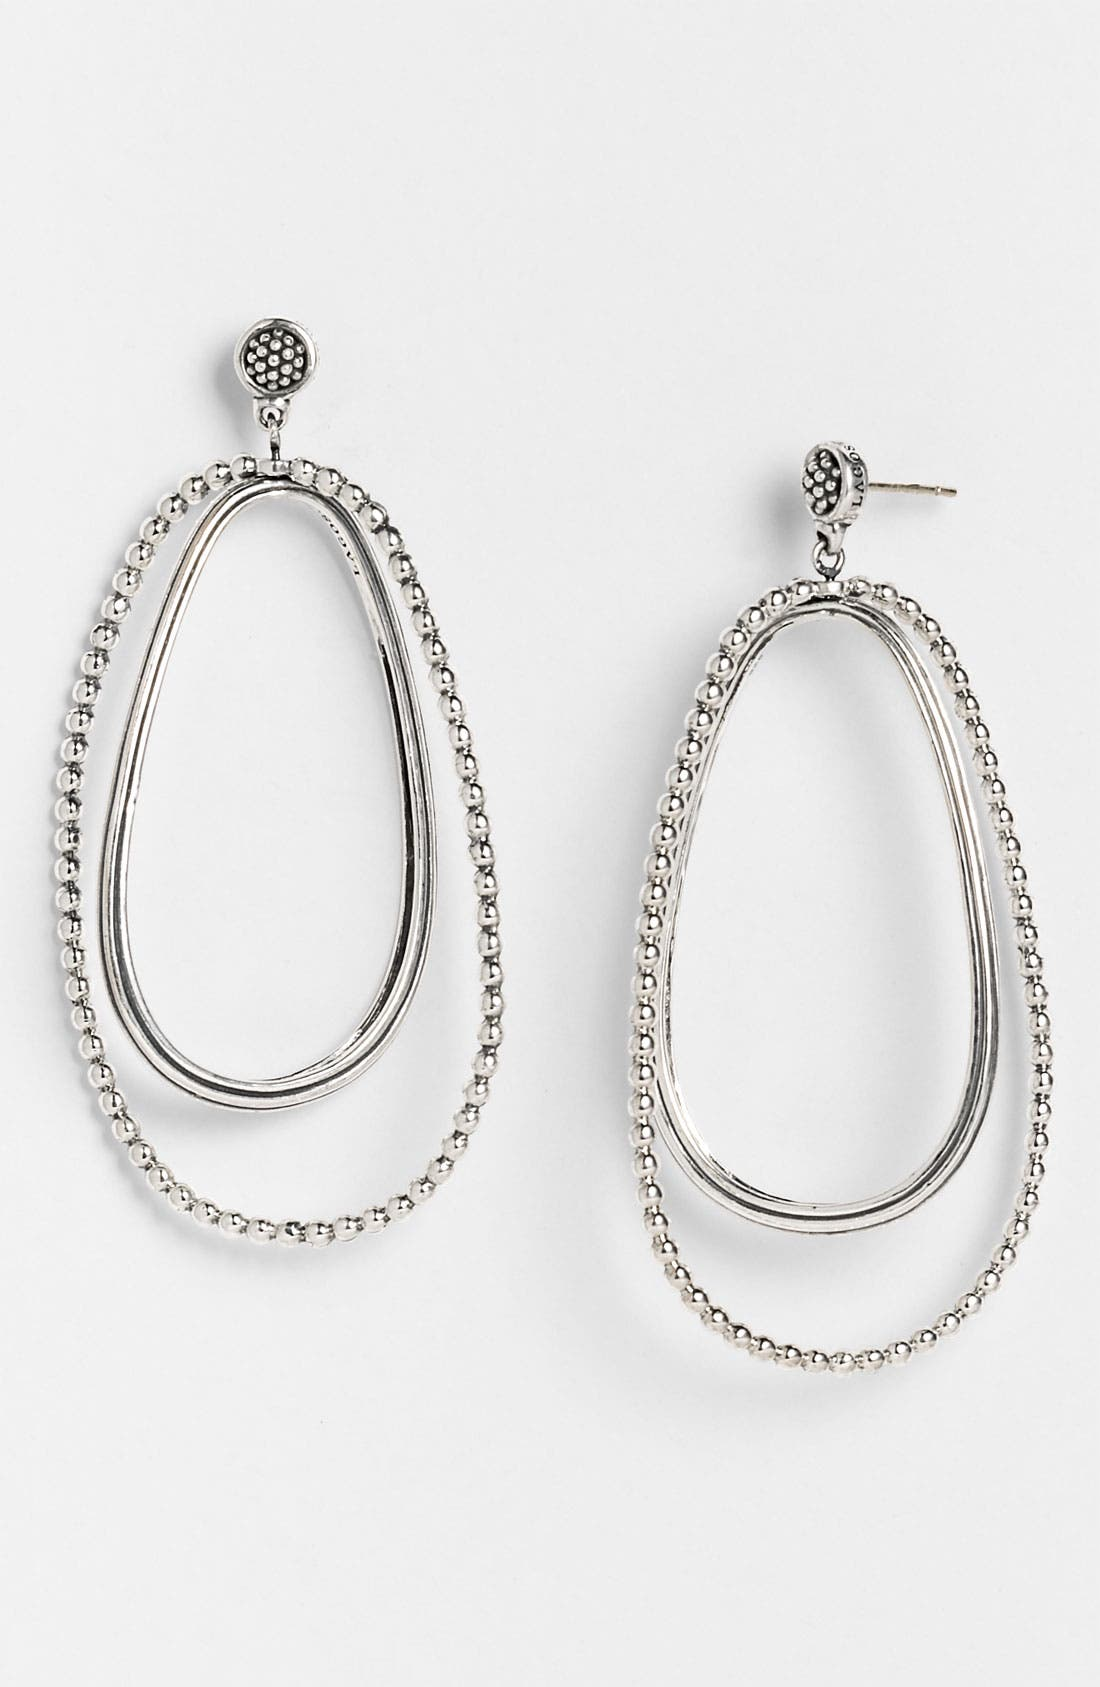 Main Image - LAGOS Caviar Oval Twist Statement Earrings